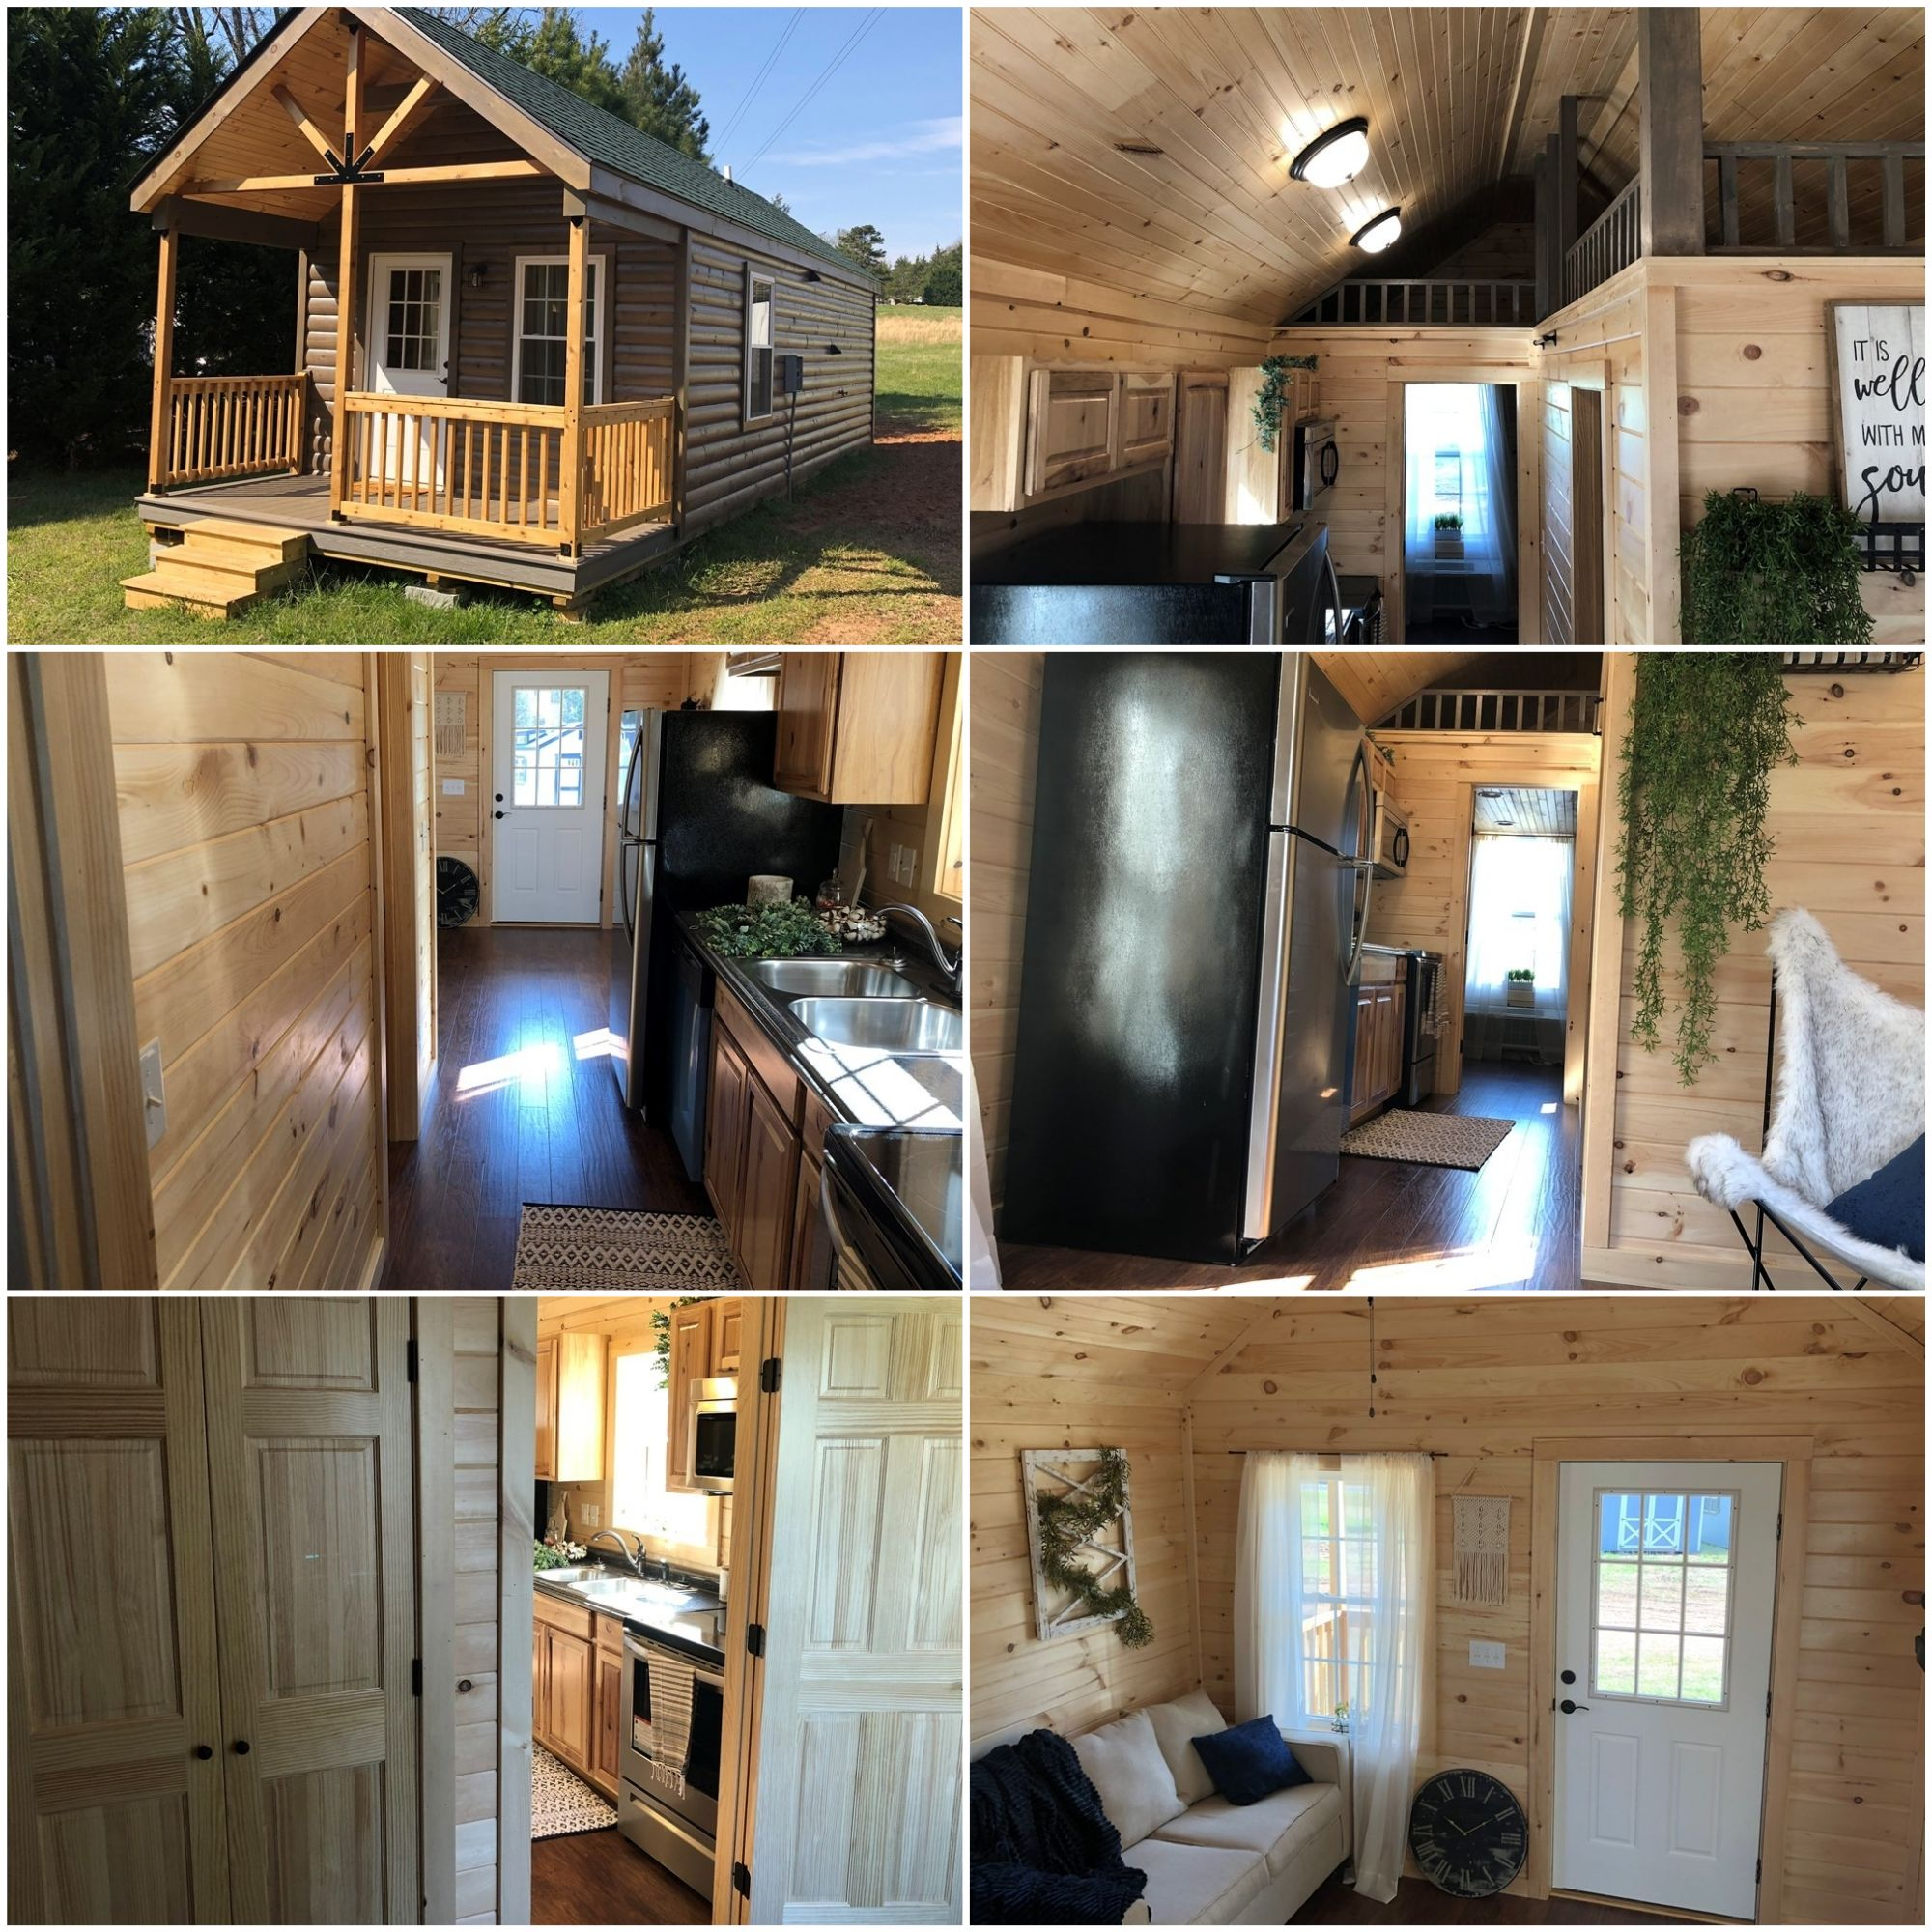 26x26 Tiny Home with Modular Certification  Best tiny house